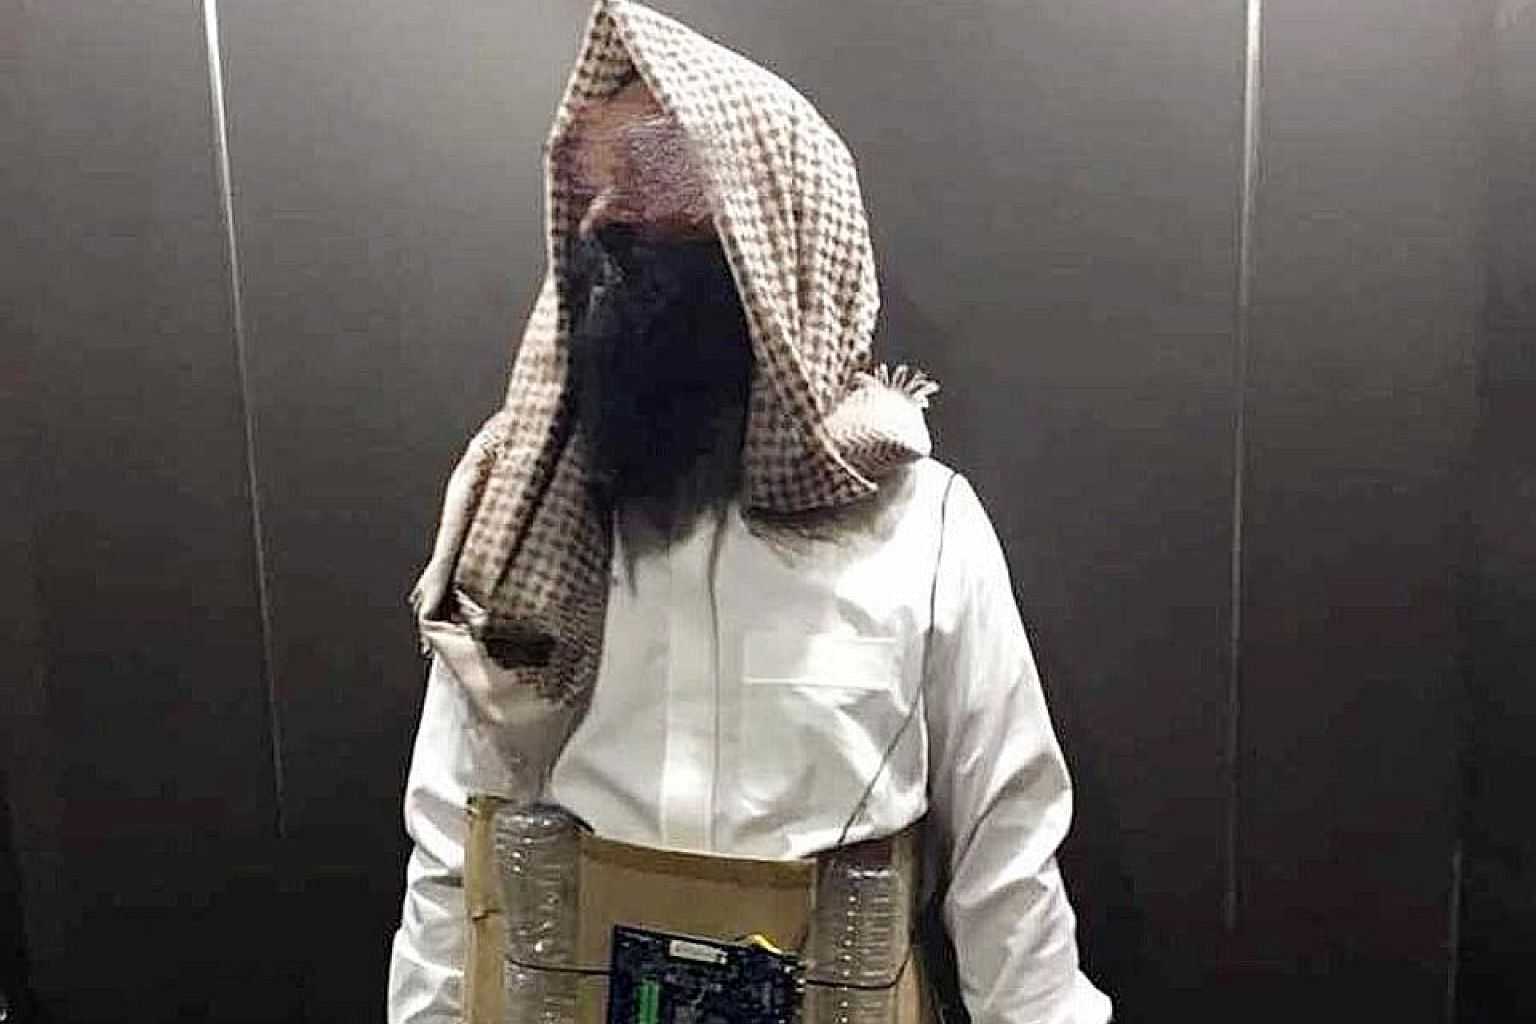 The man, dressed in his costume, was seen in a lift in a Petaling Jaya building.